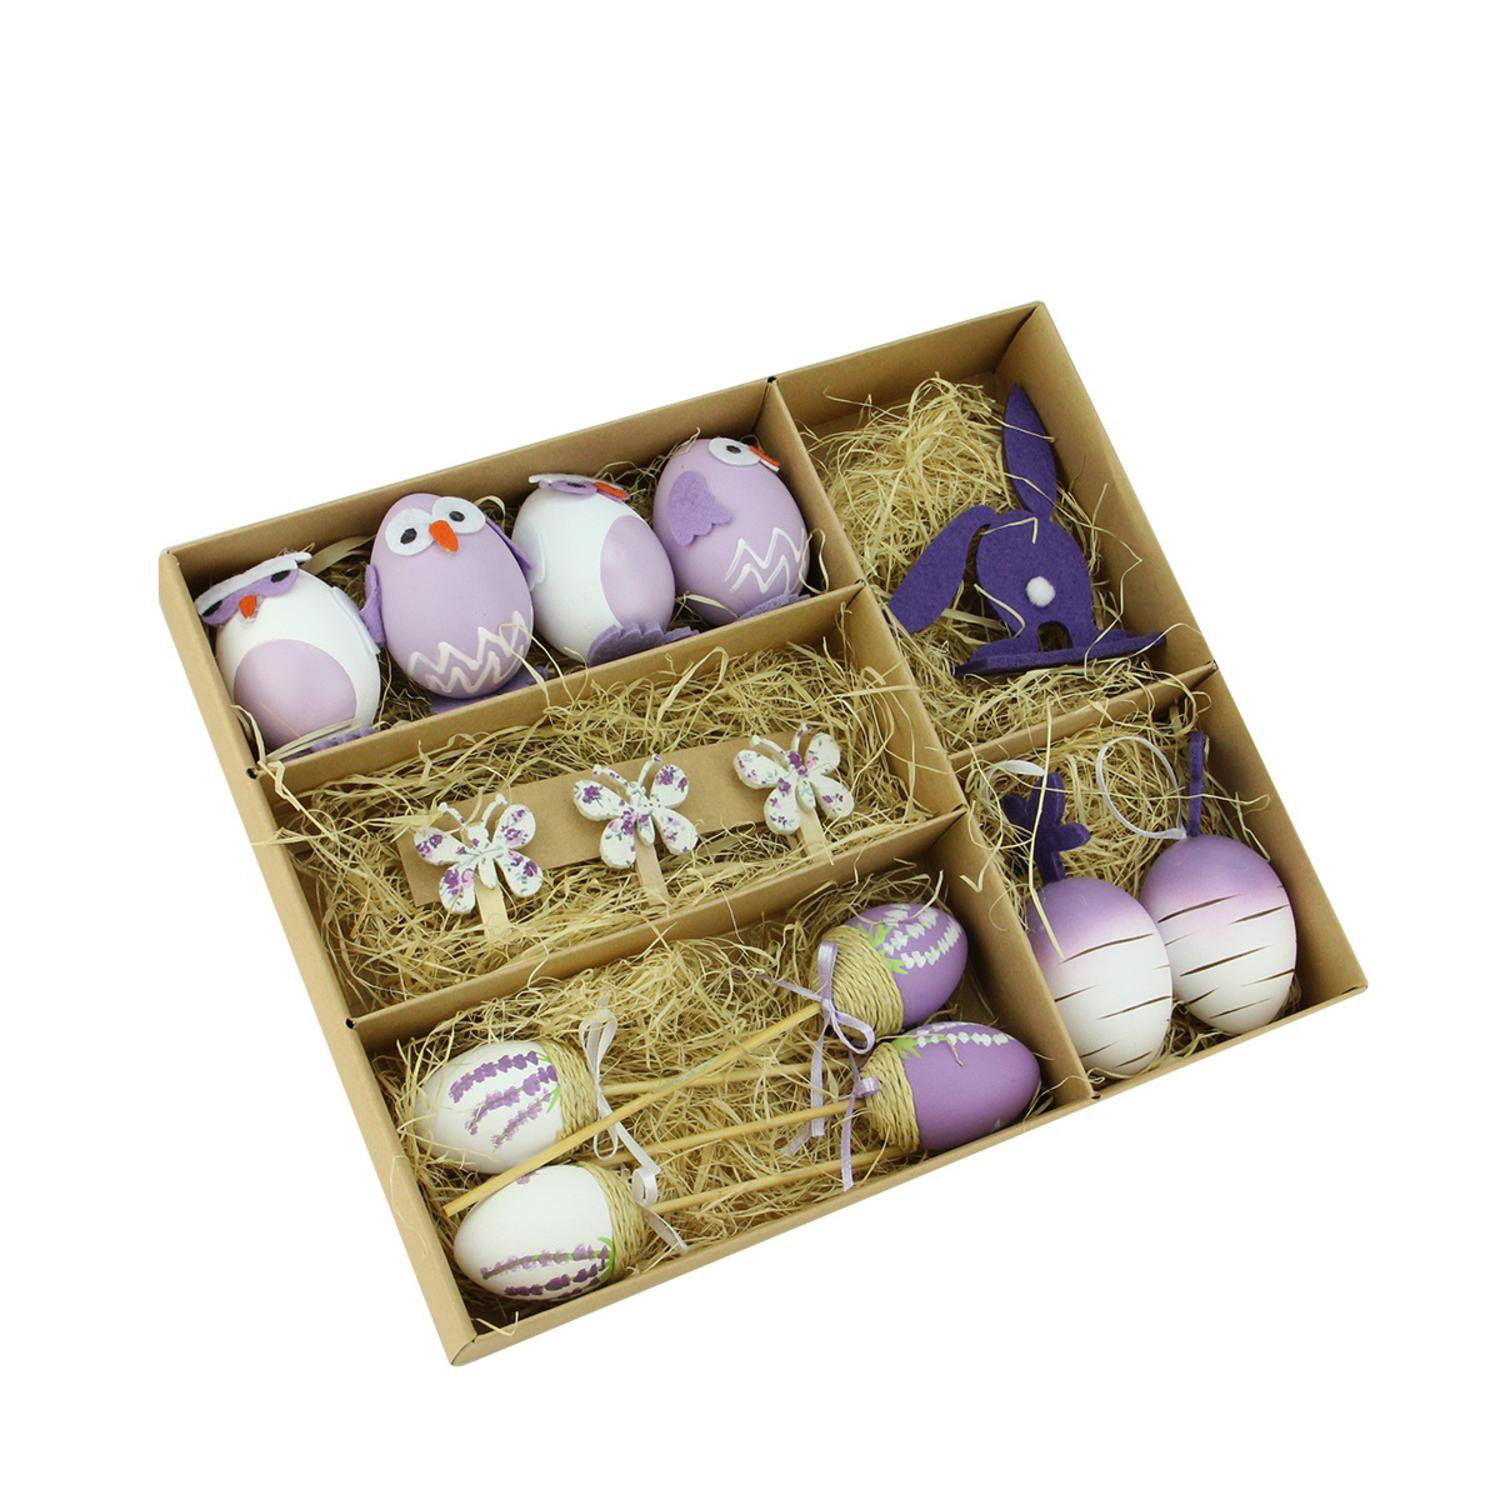 Purple & White Easter Egg, Chicken & Bunny Decorations Set of 14